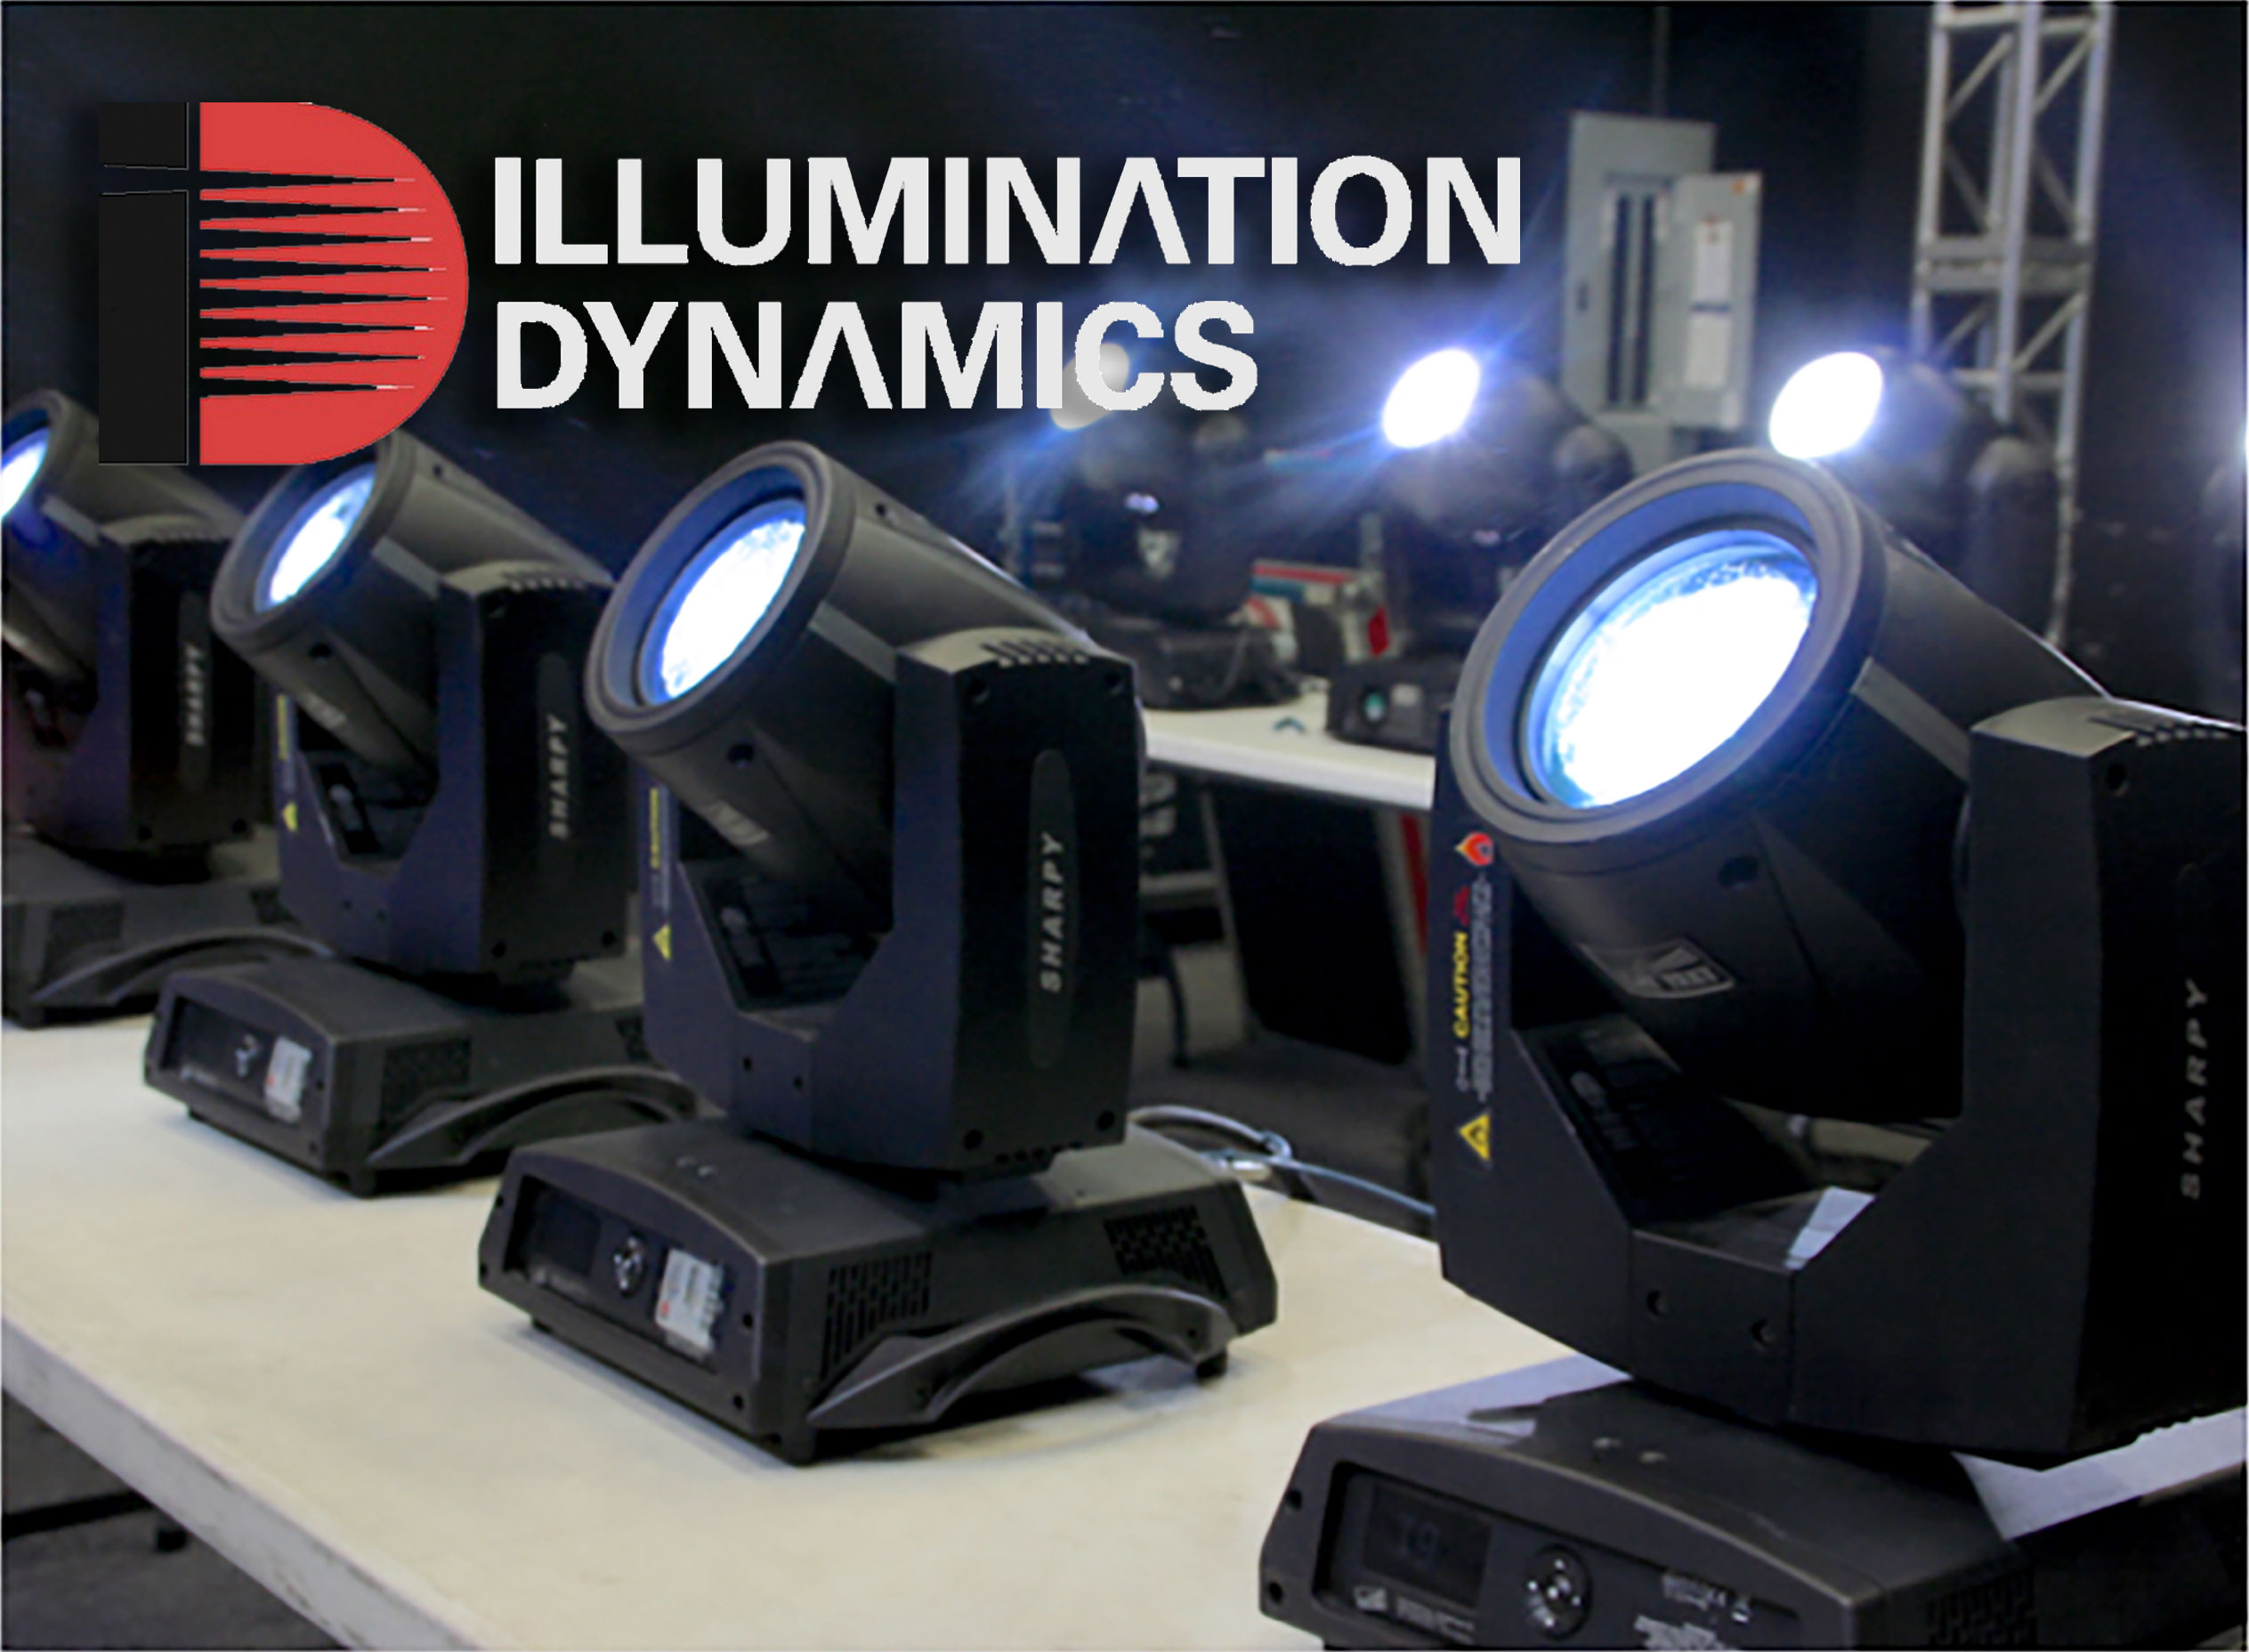 Tiger Group Selling Excess Filmmaking Equipment from Illumination Dynamics